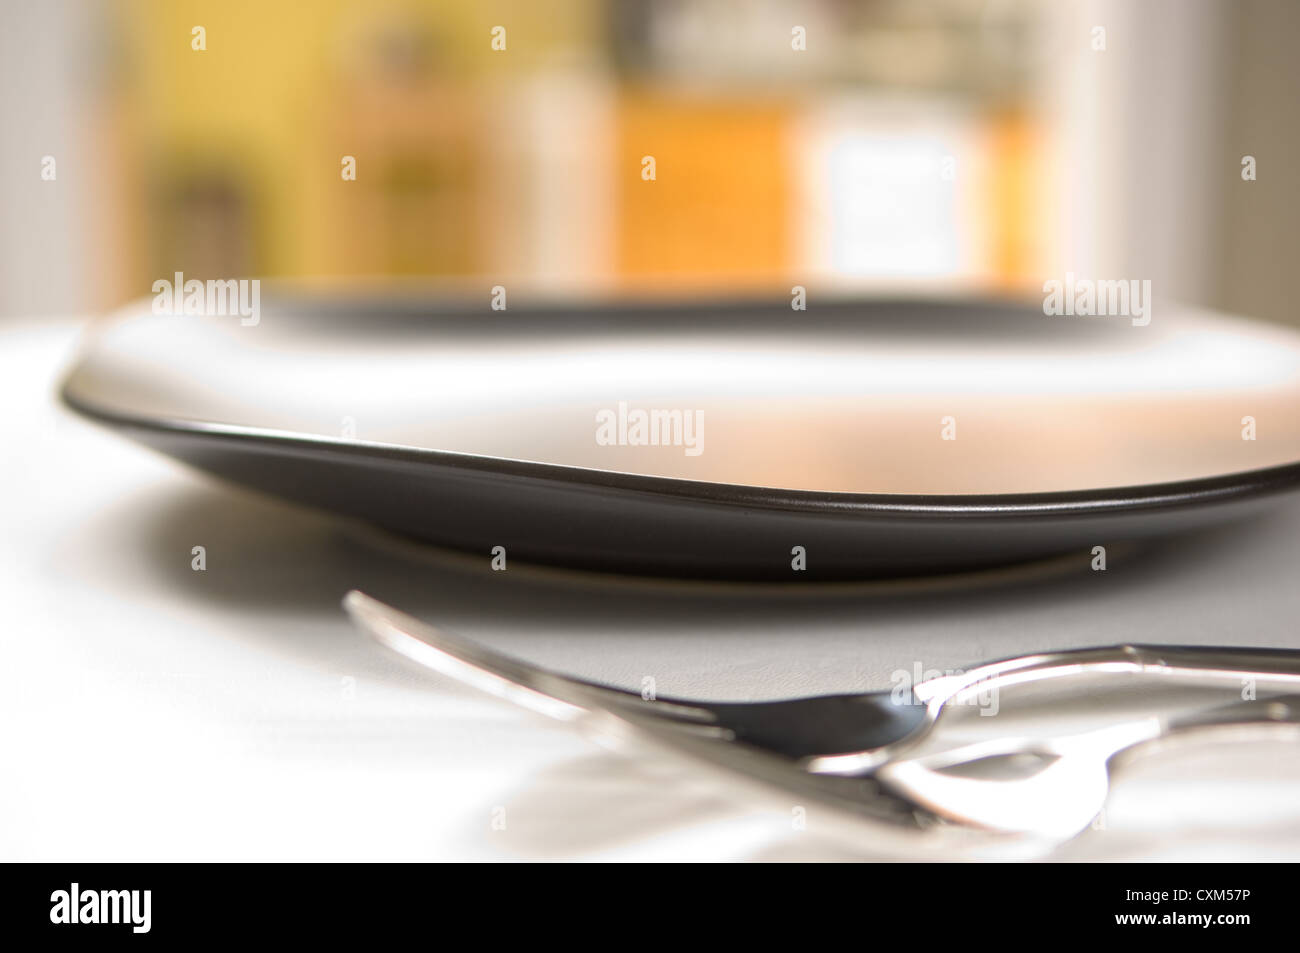 Dinnerware setting with black plates and flatware - Stock Image